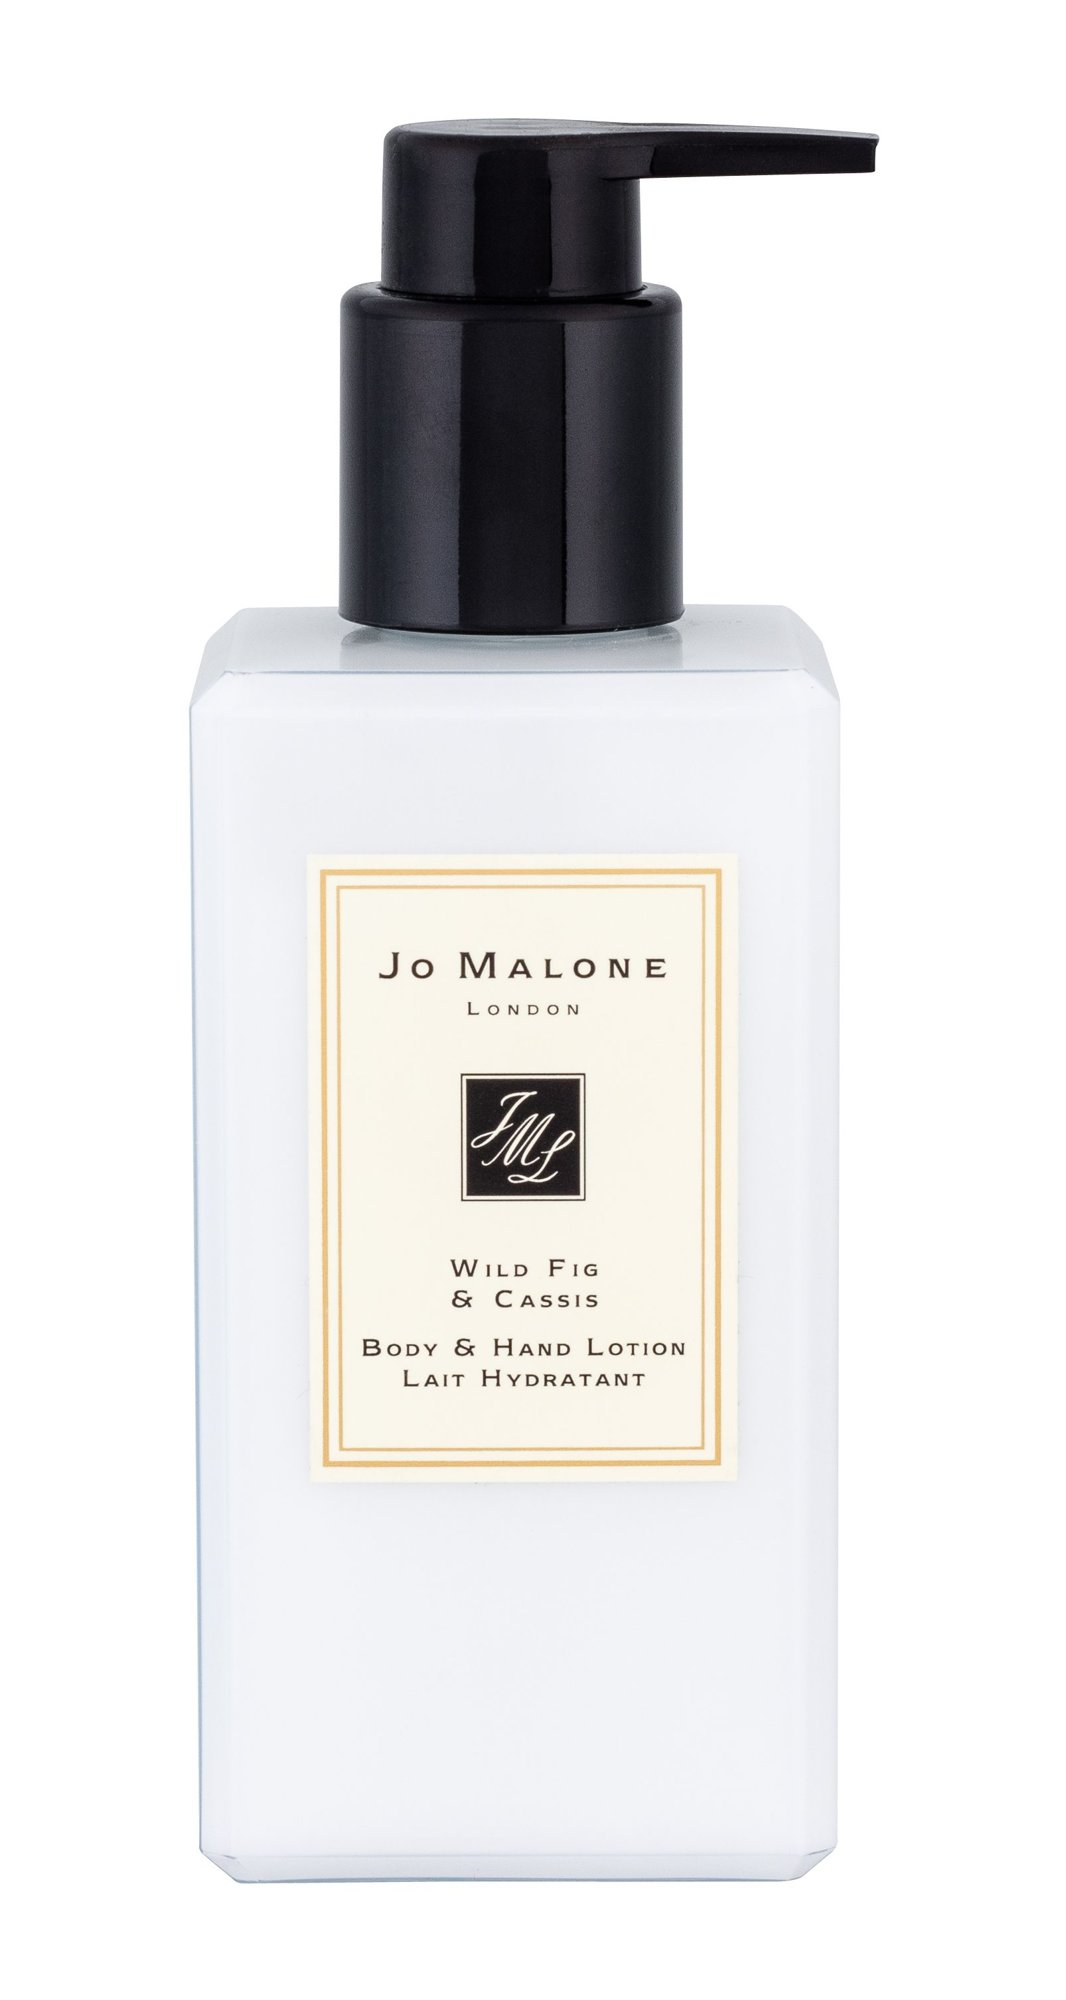 Jo Malone Wild Fig & Cassis Body Lotion 250ml